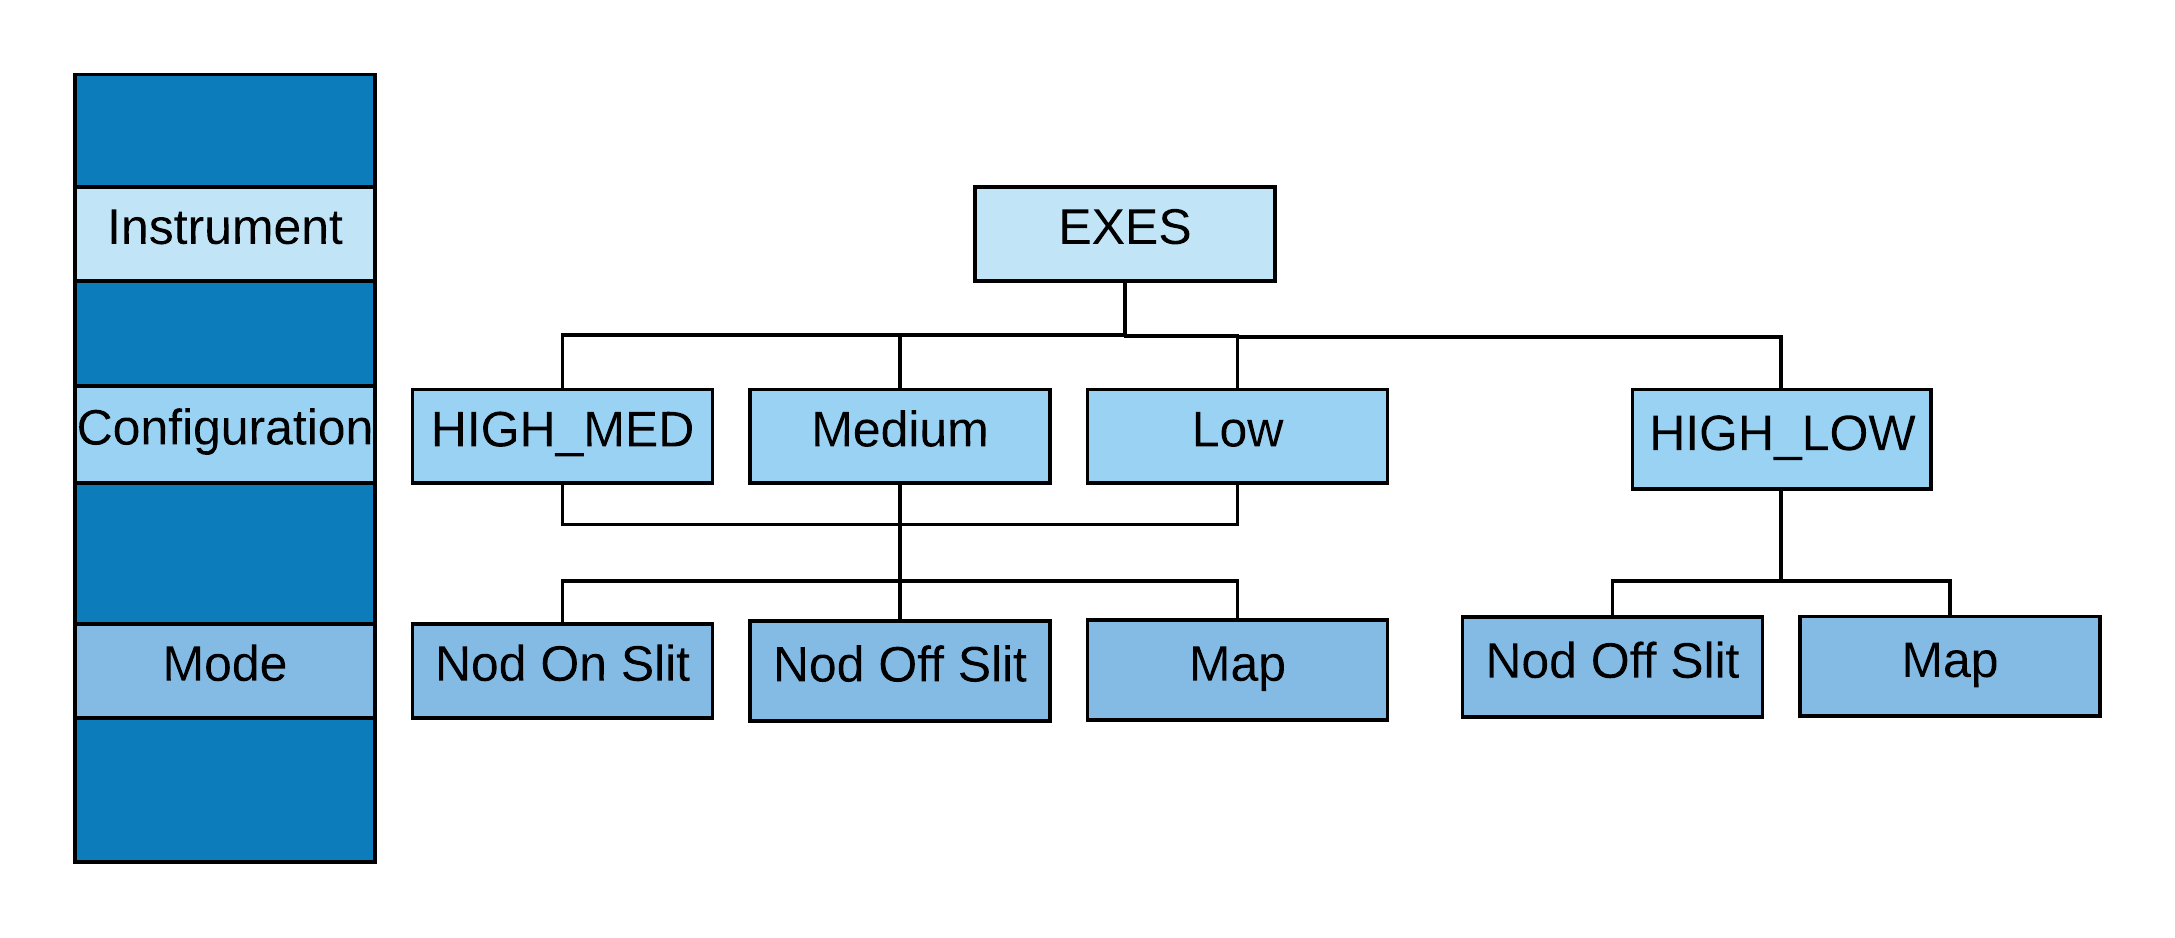 EXES configuration and mode flowchart diagram